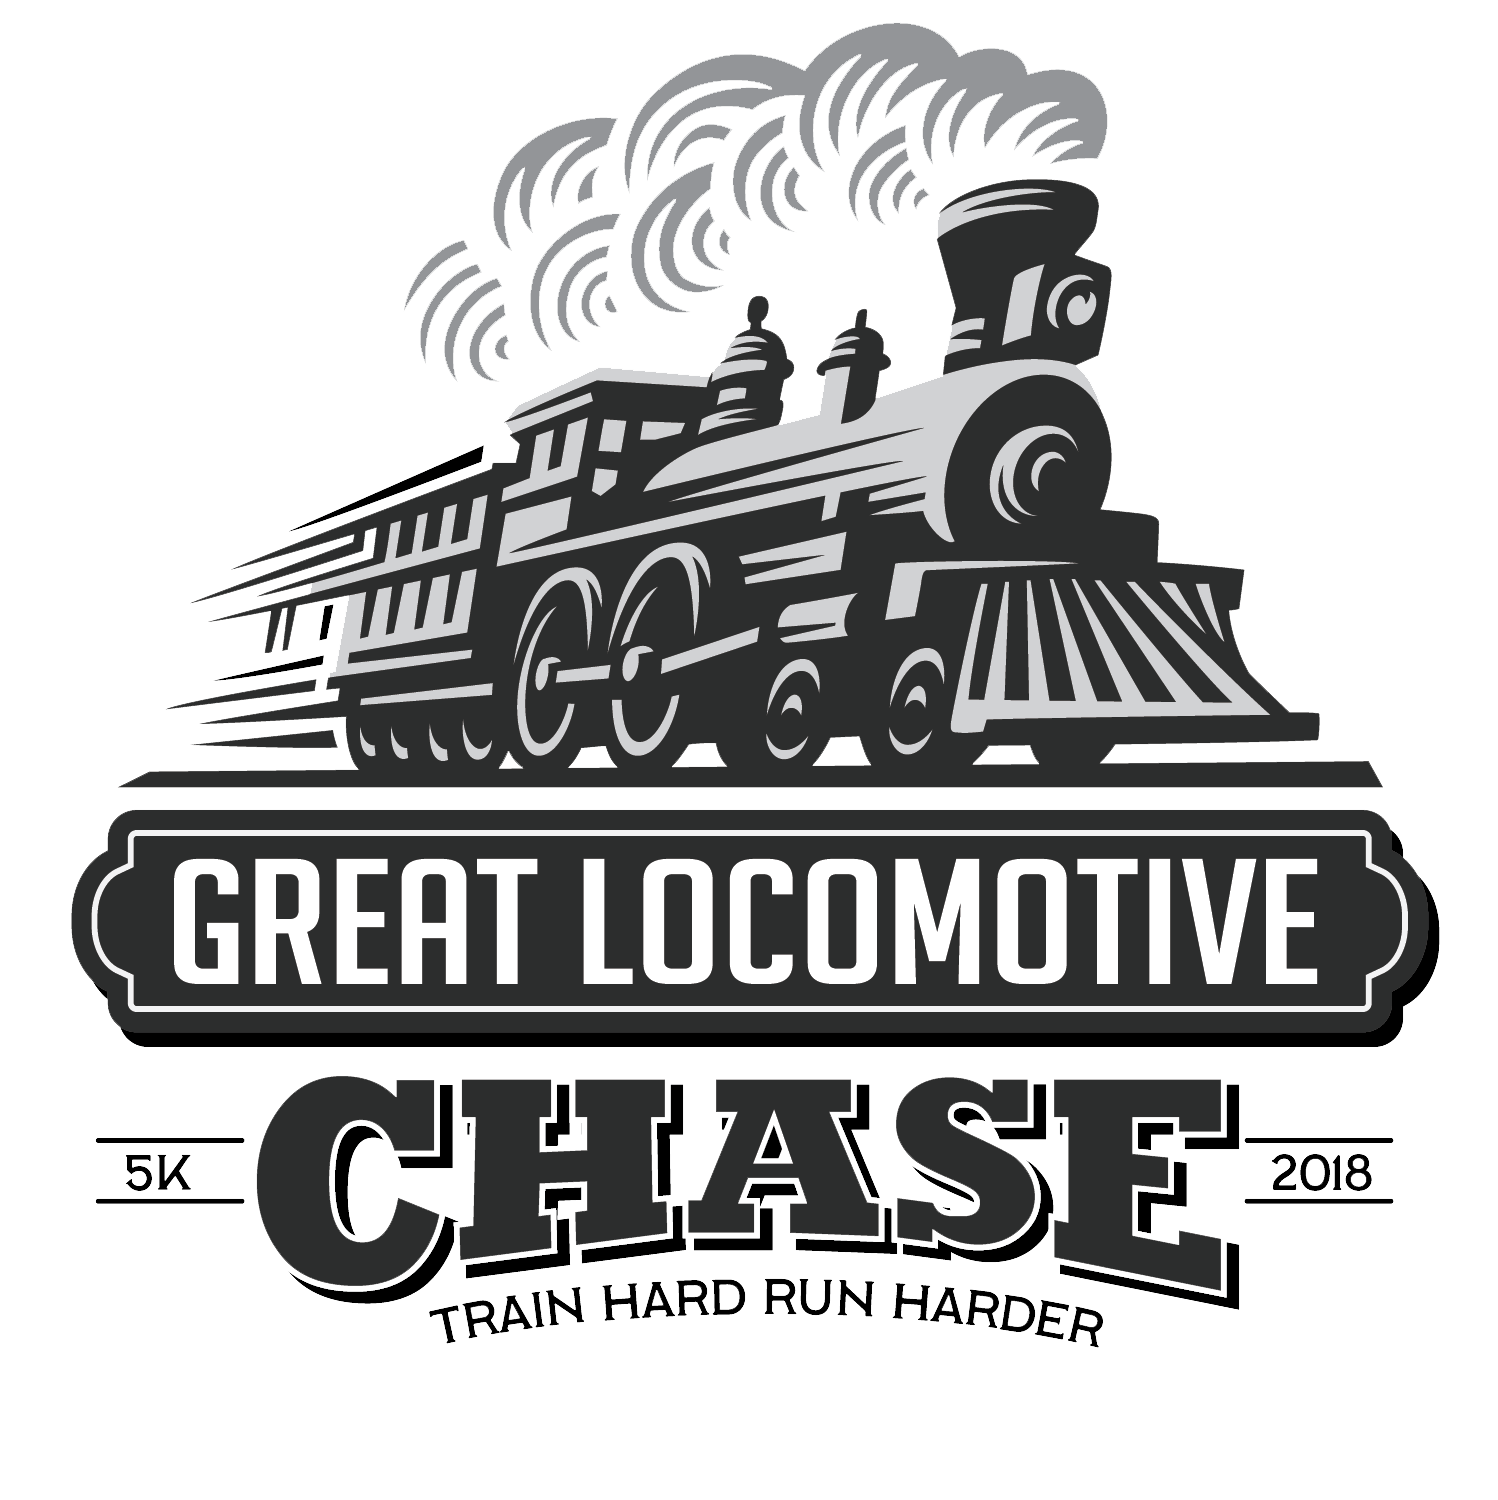 Great Locomotive Chase 5k